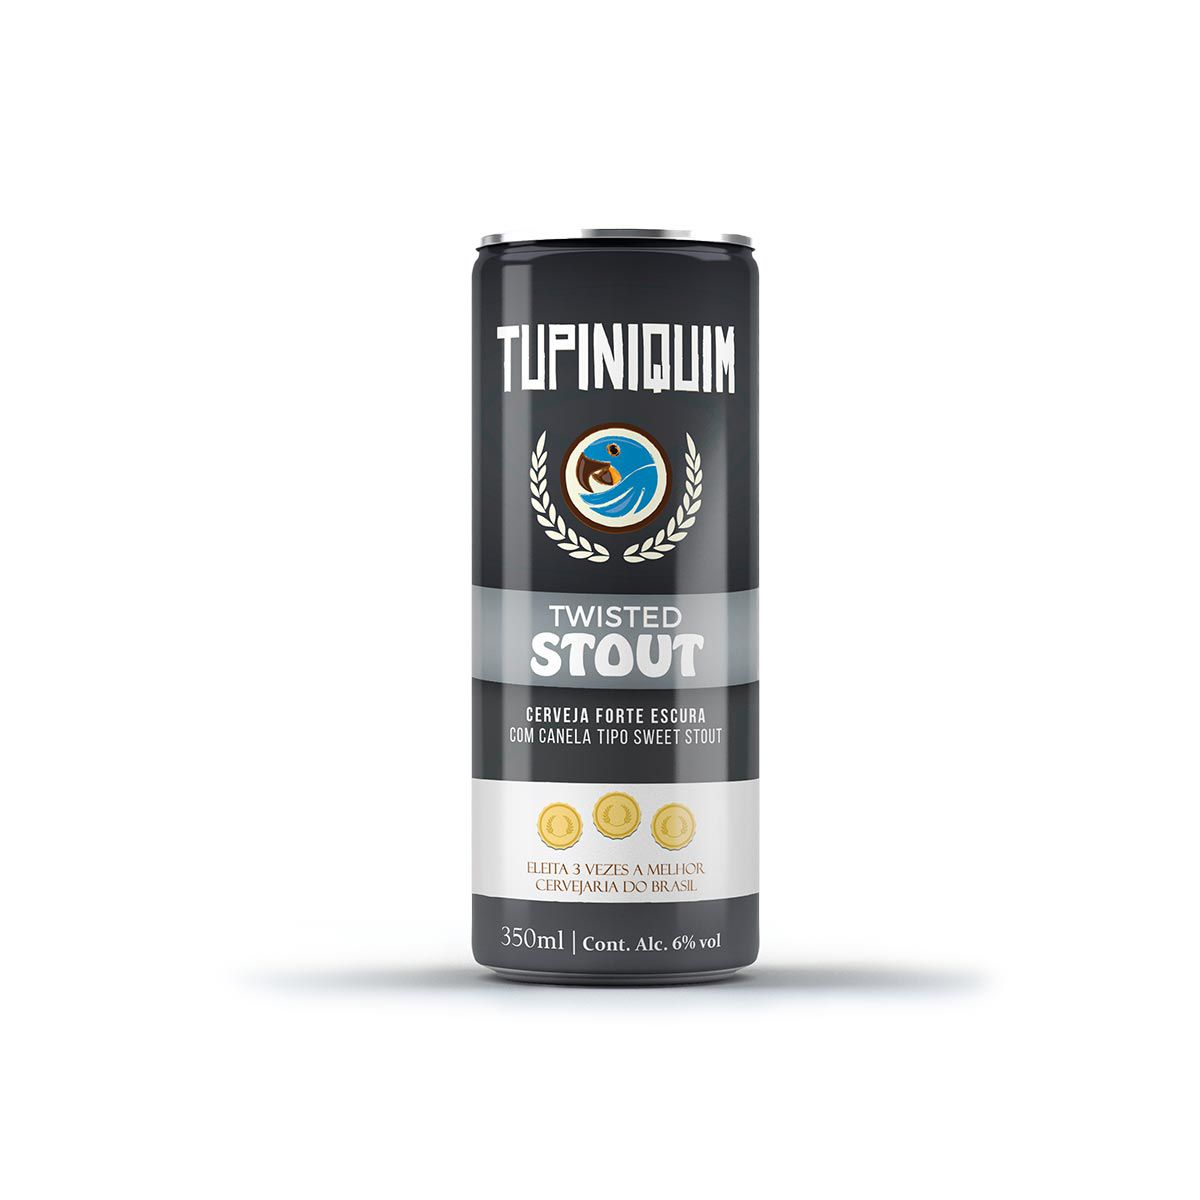 Tupiniquim Twisted Stout 350ml lata